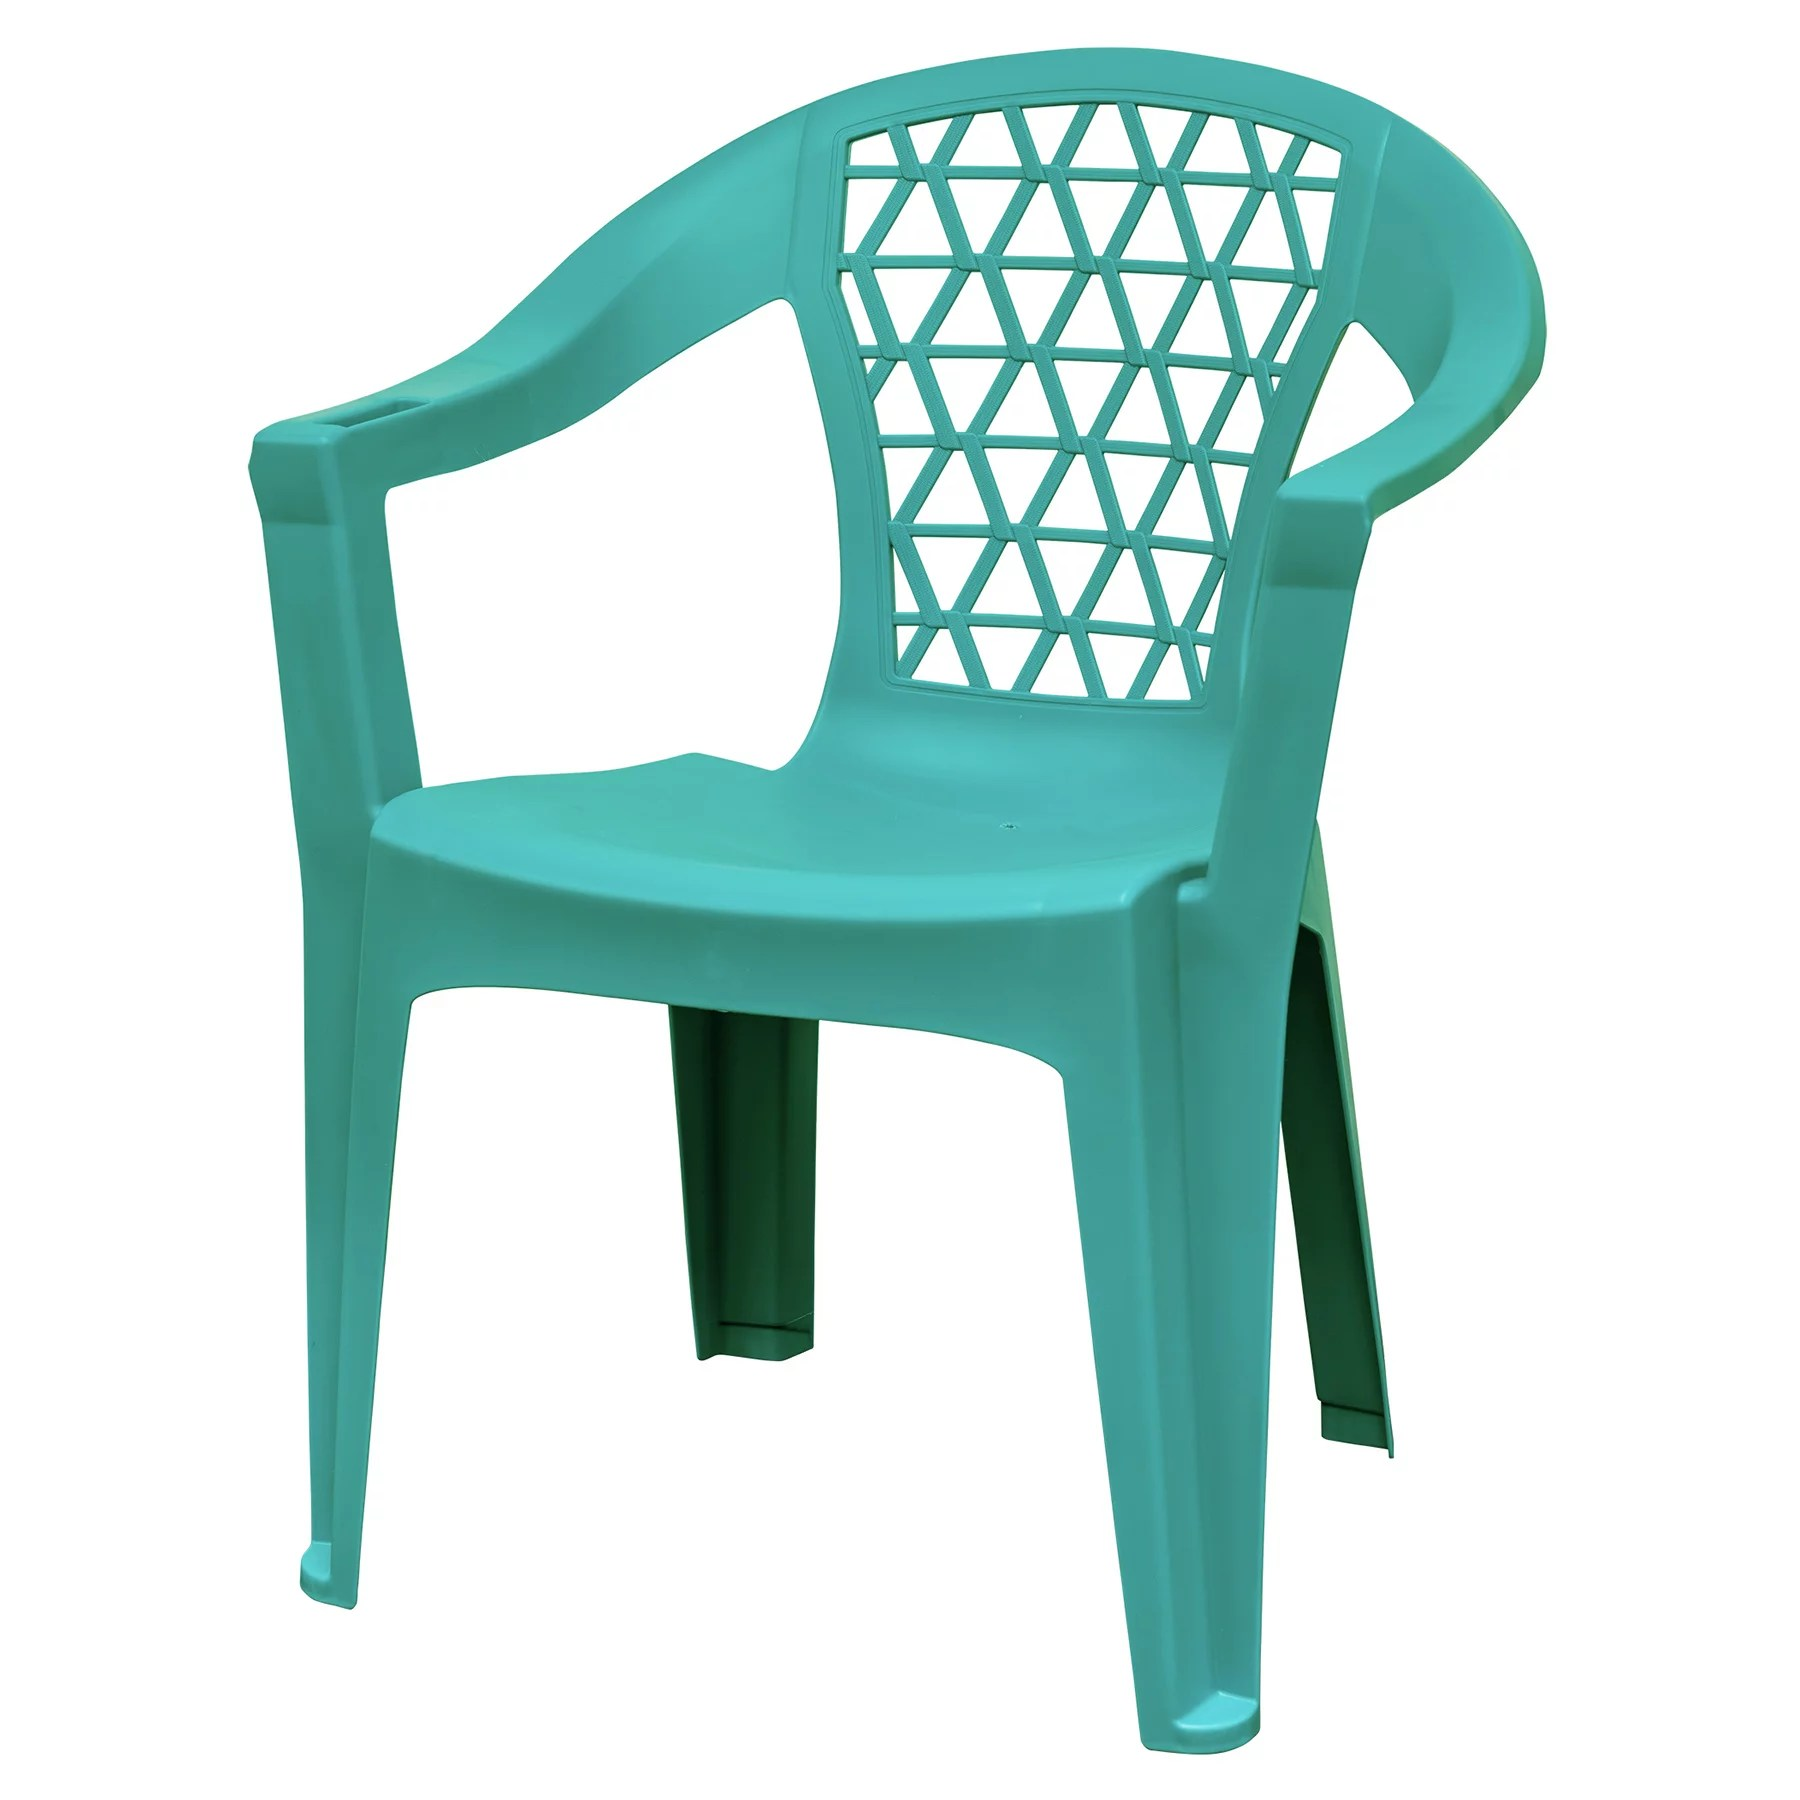 adams penza outdoor resin stack chair with phone holder plastic patio furniture teal